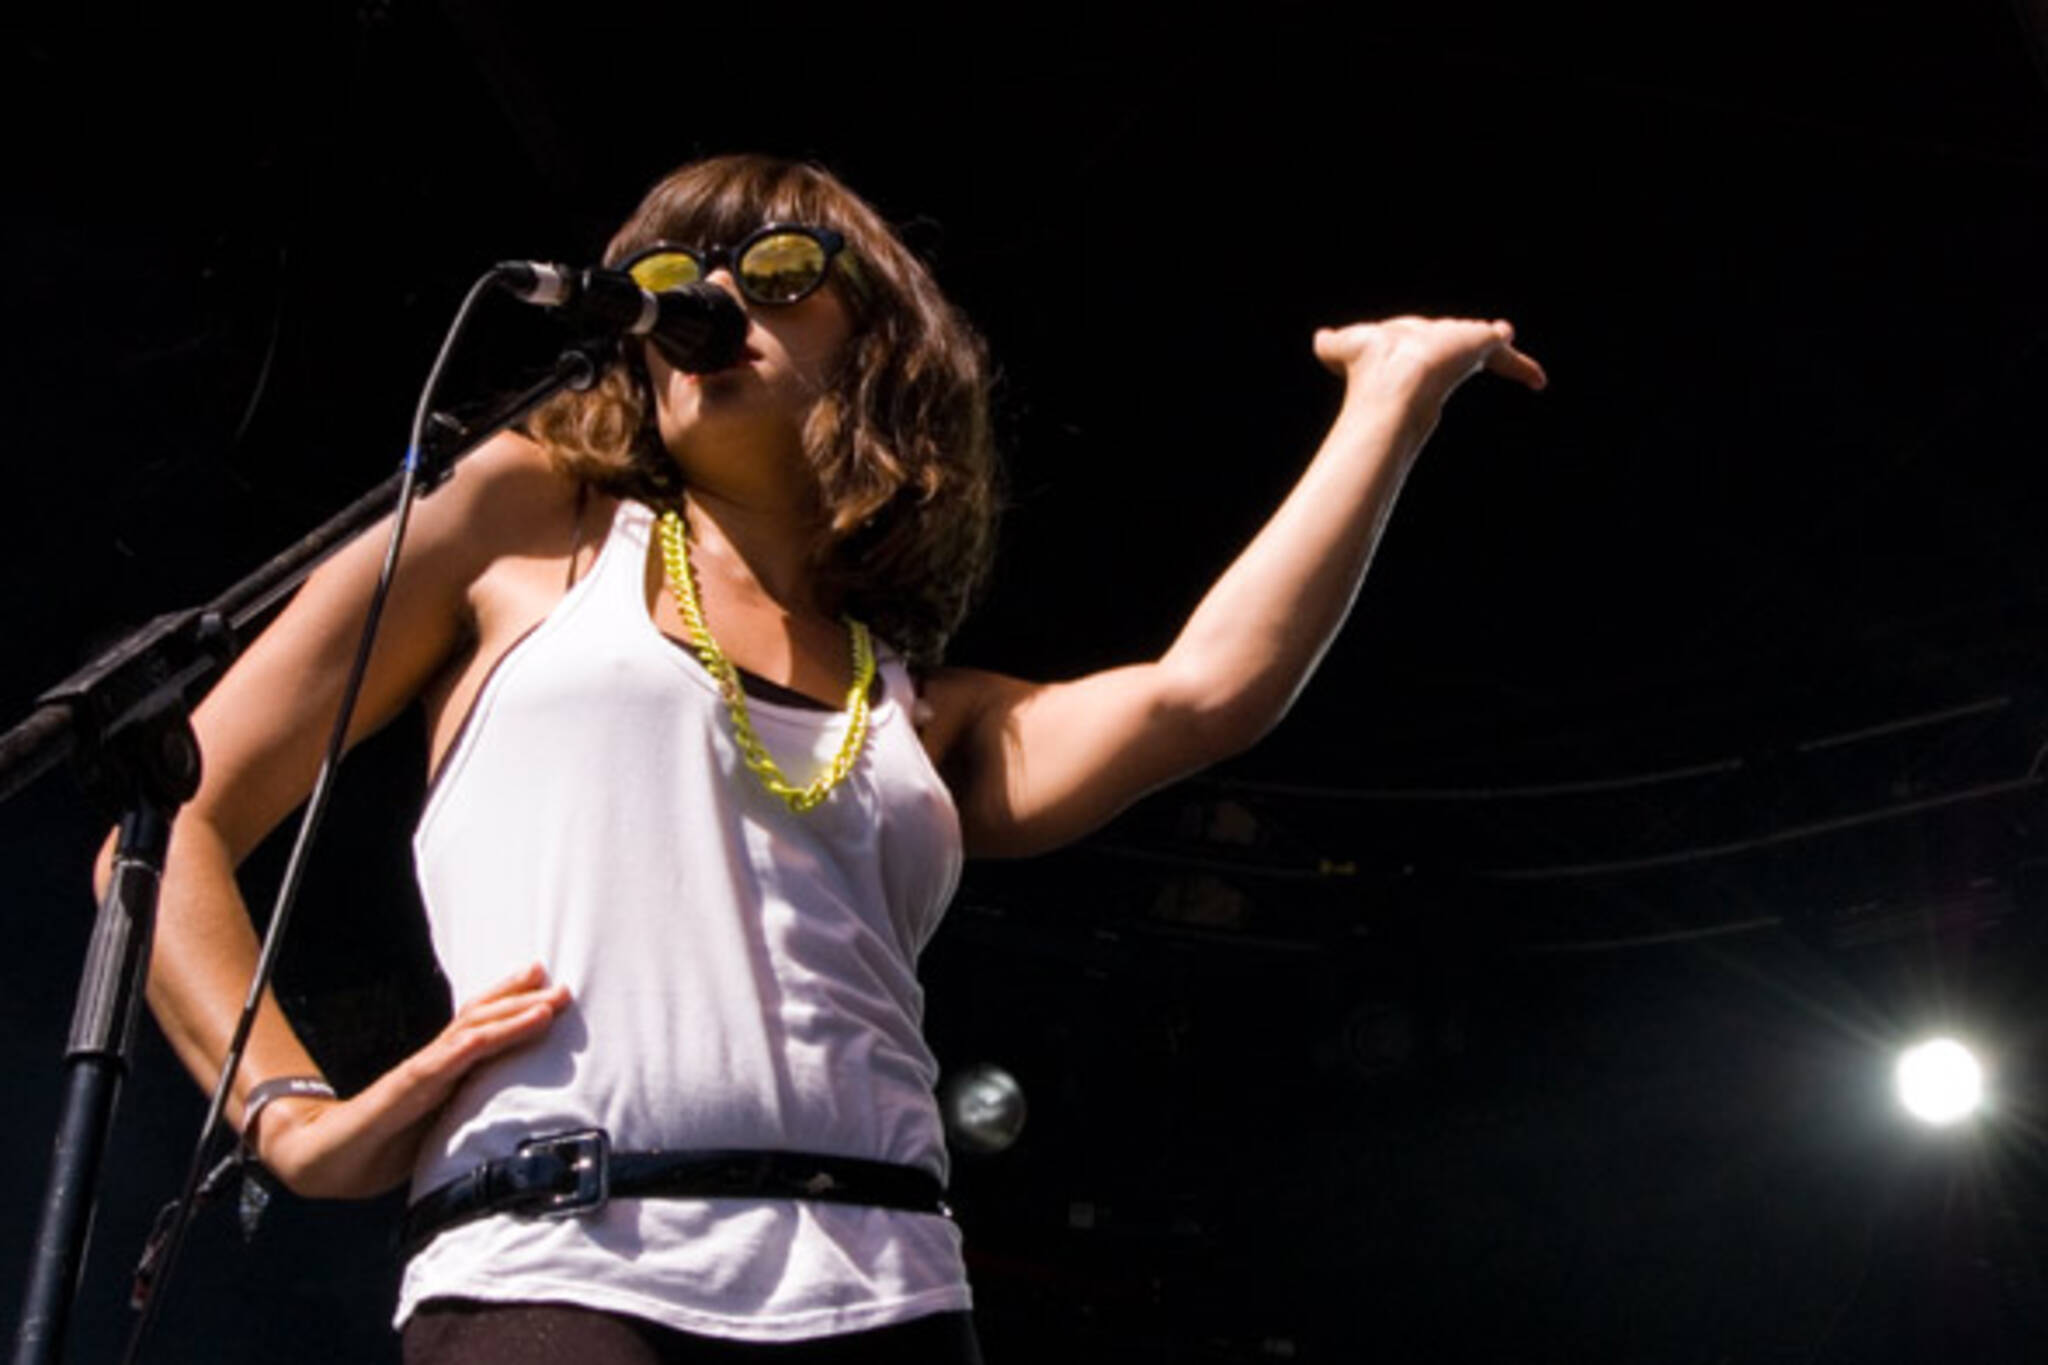 Dragonette lead singer Martina Sorbara, photo by Ryan Couldrey